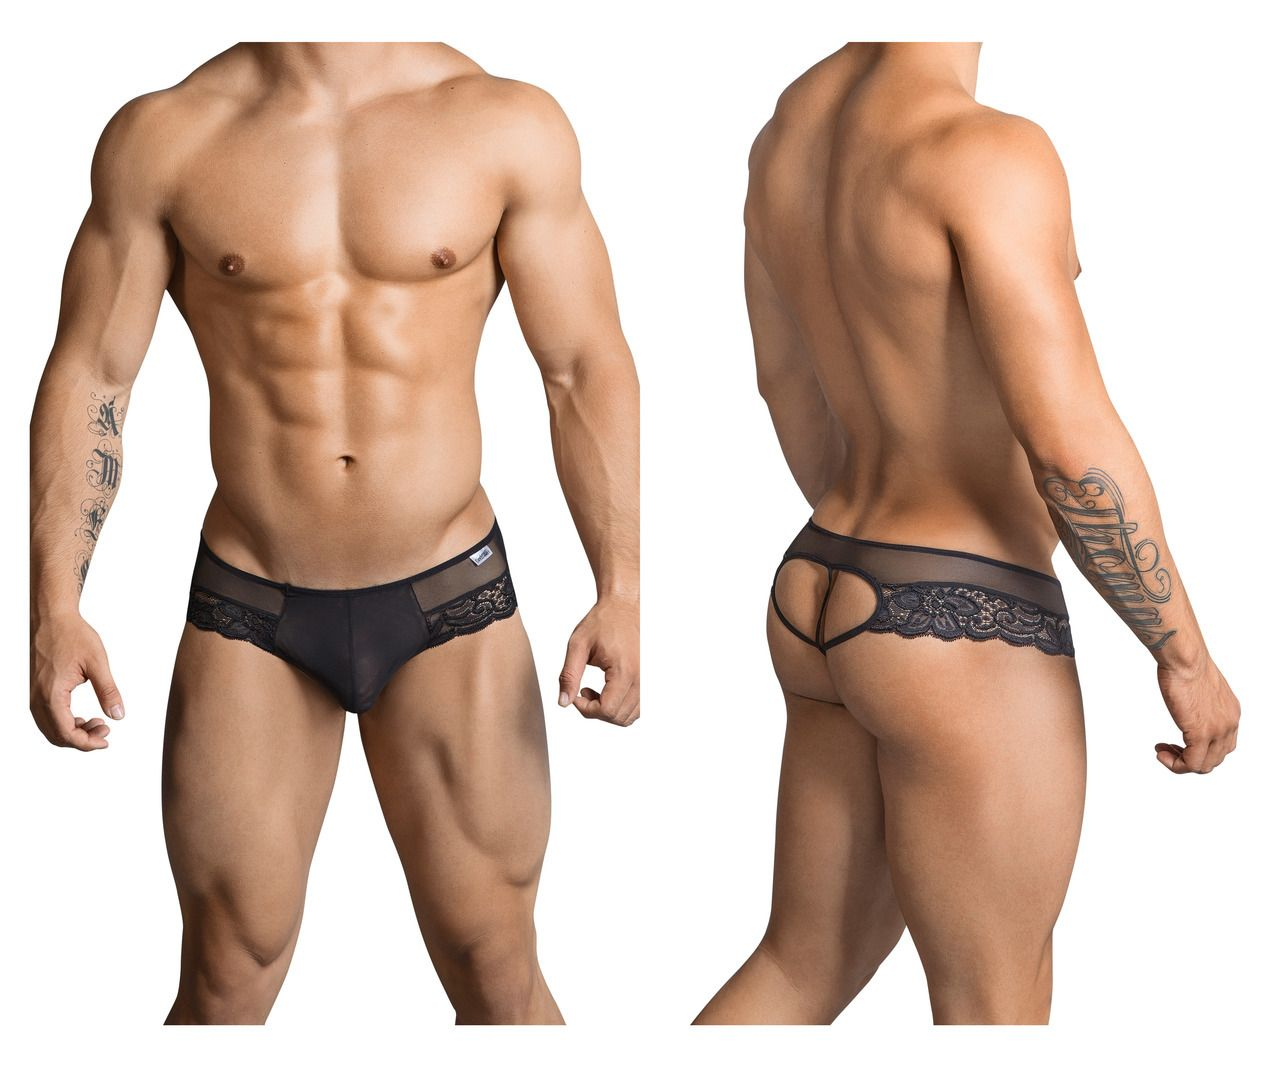 Mens fetish underwear